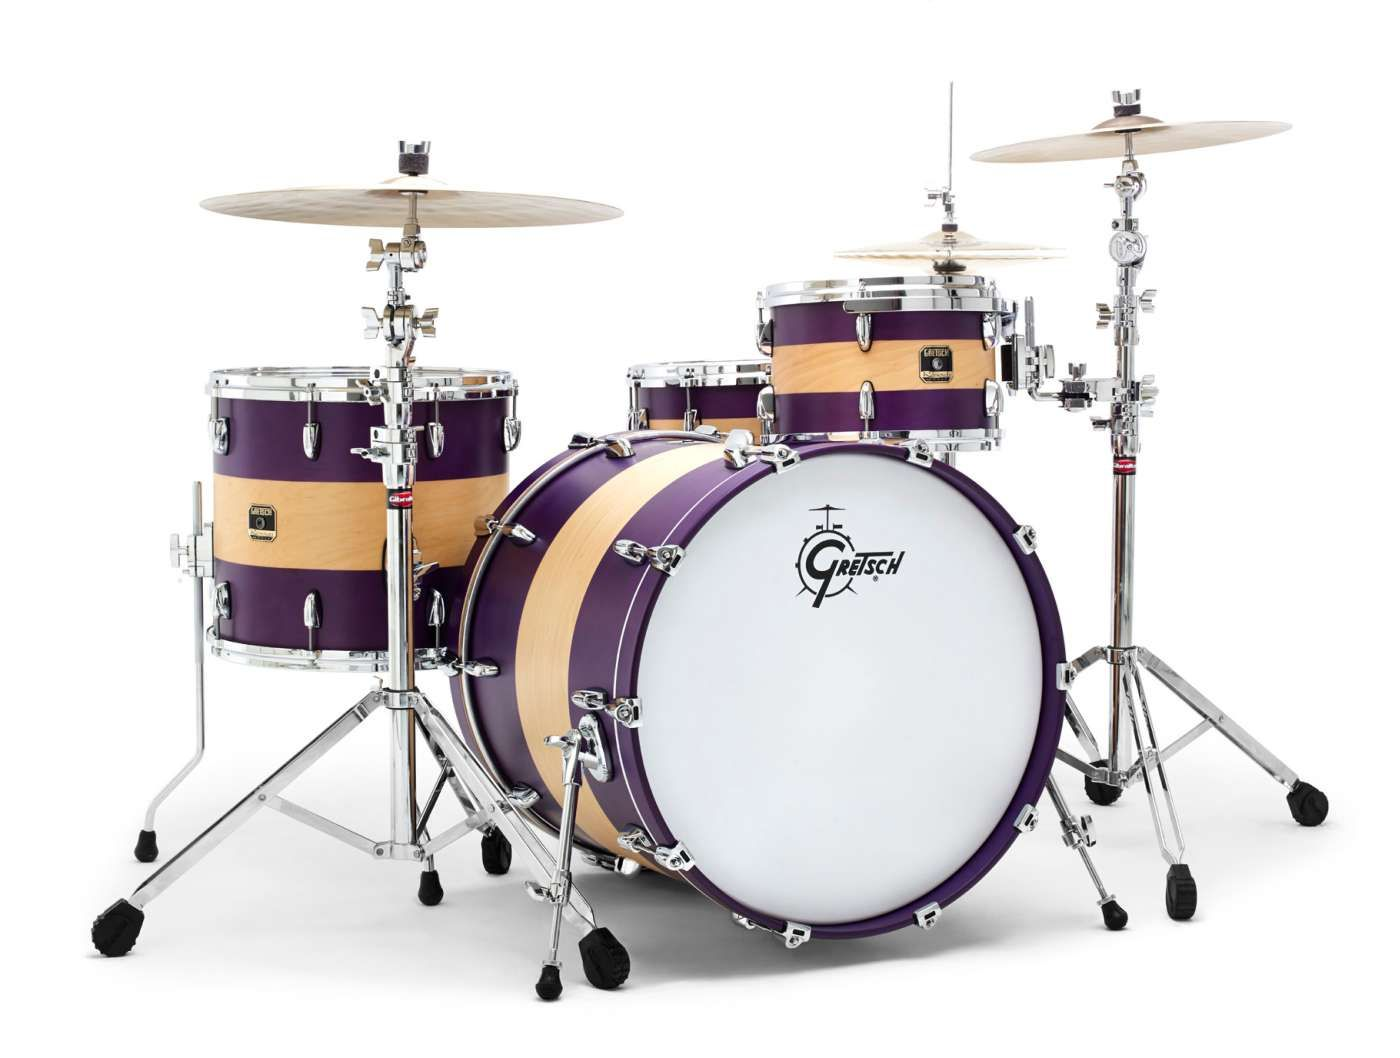 gretsch drums google search drums pinterest gretsch drums gretsch and drums. Black Bedroom Furniture Sets. Home Design Ideas